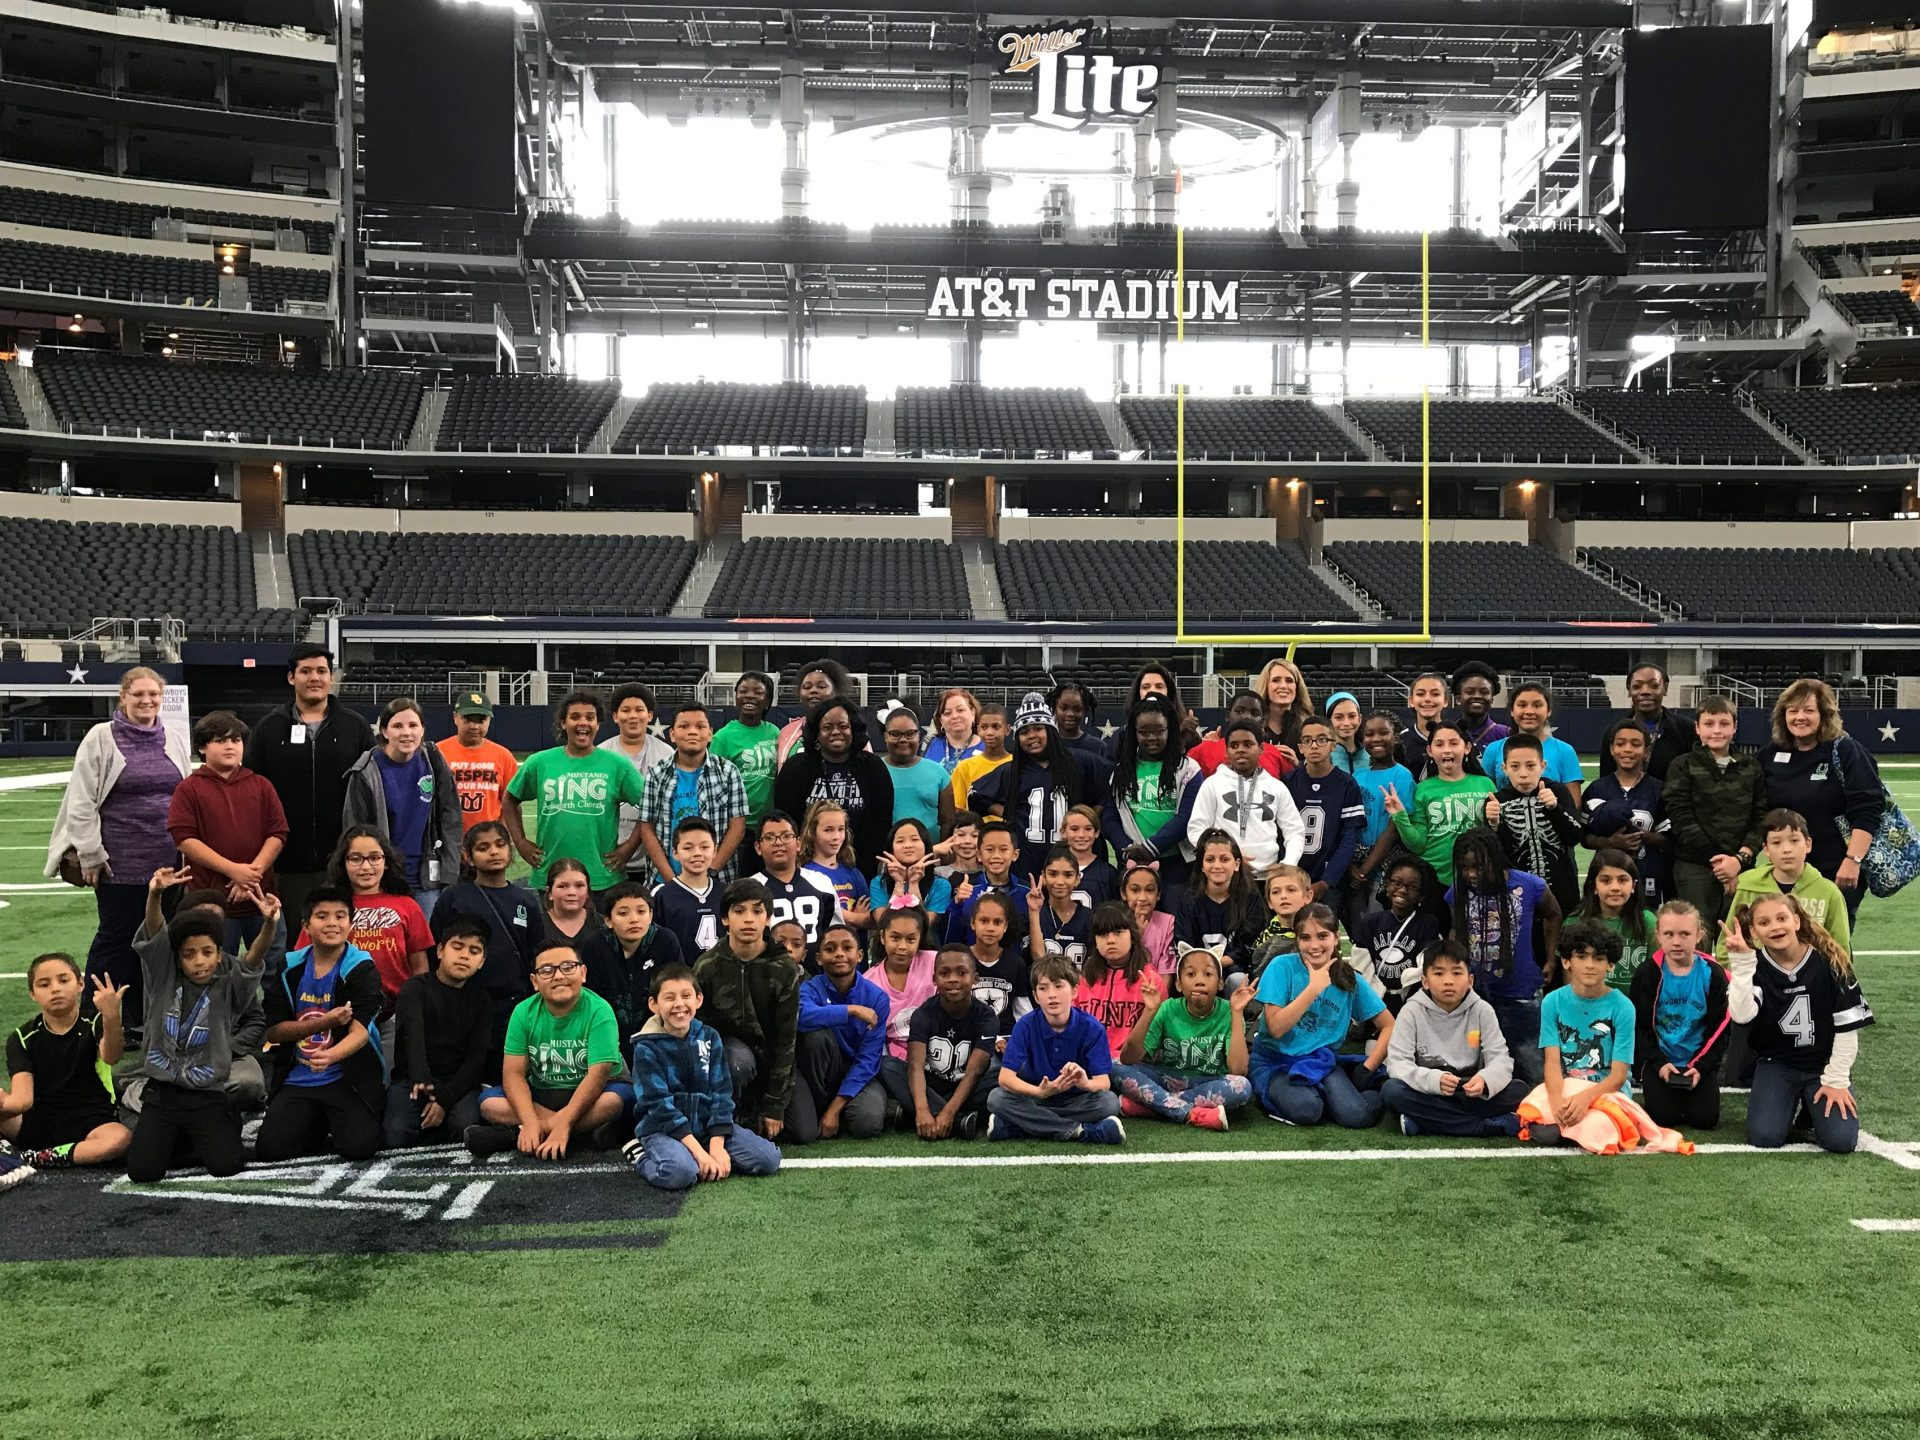 Fifth Grade Goes to AT&T Stadium